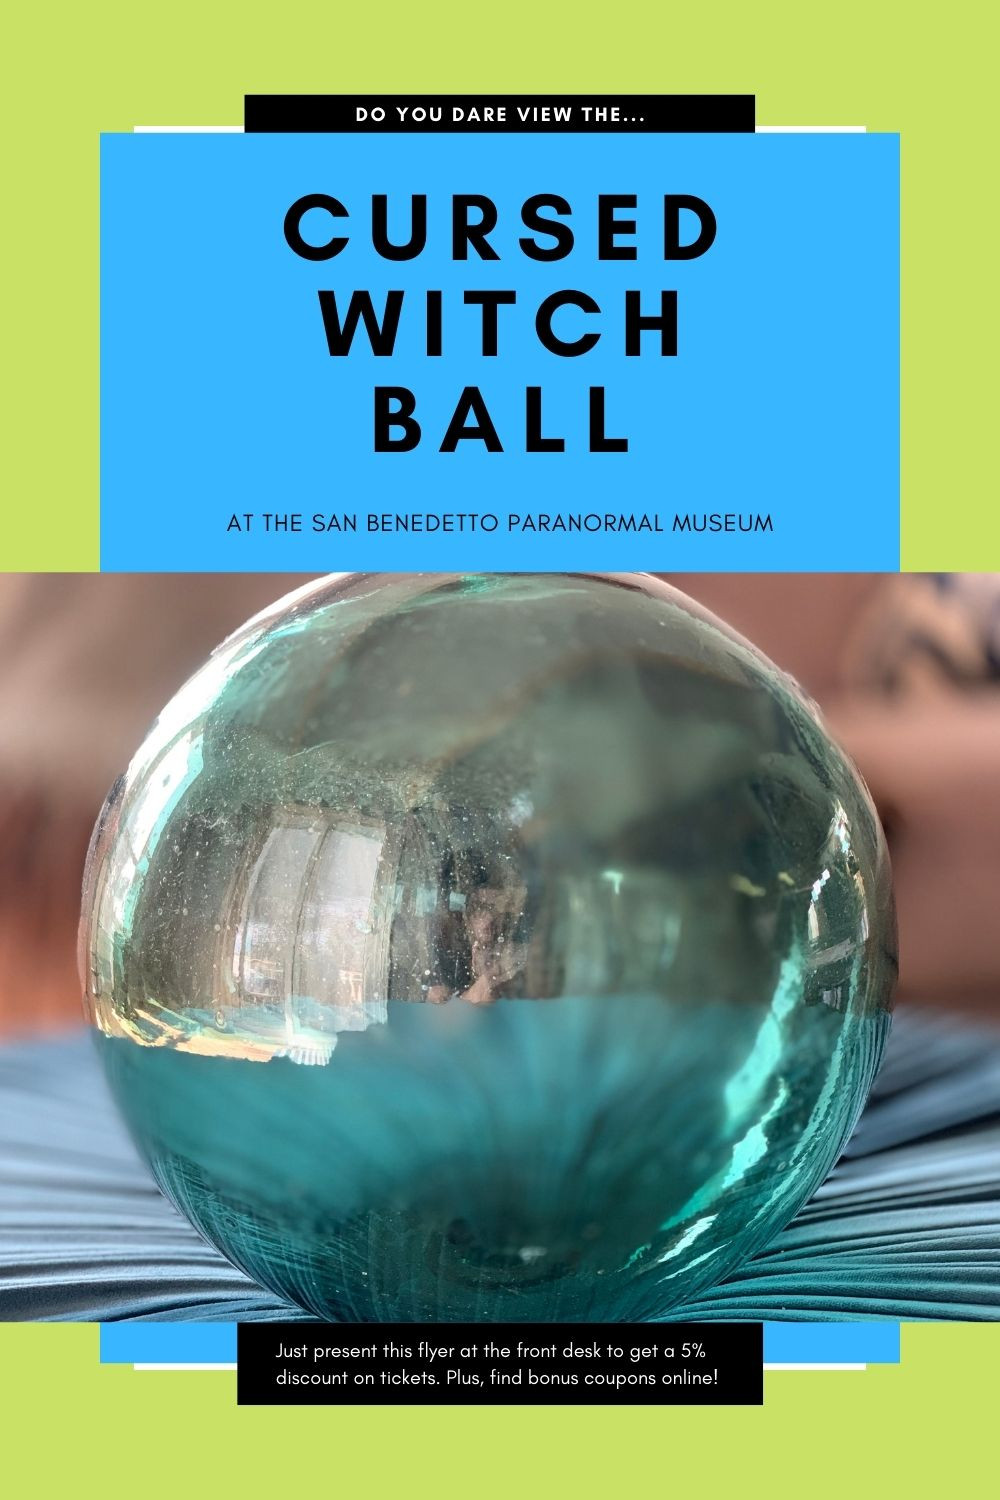 Do you dare view the cursed witch ball? At the San Benedetto Paranormal Museum.